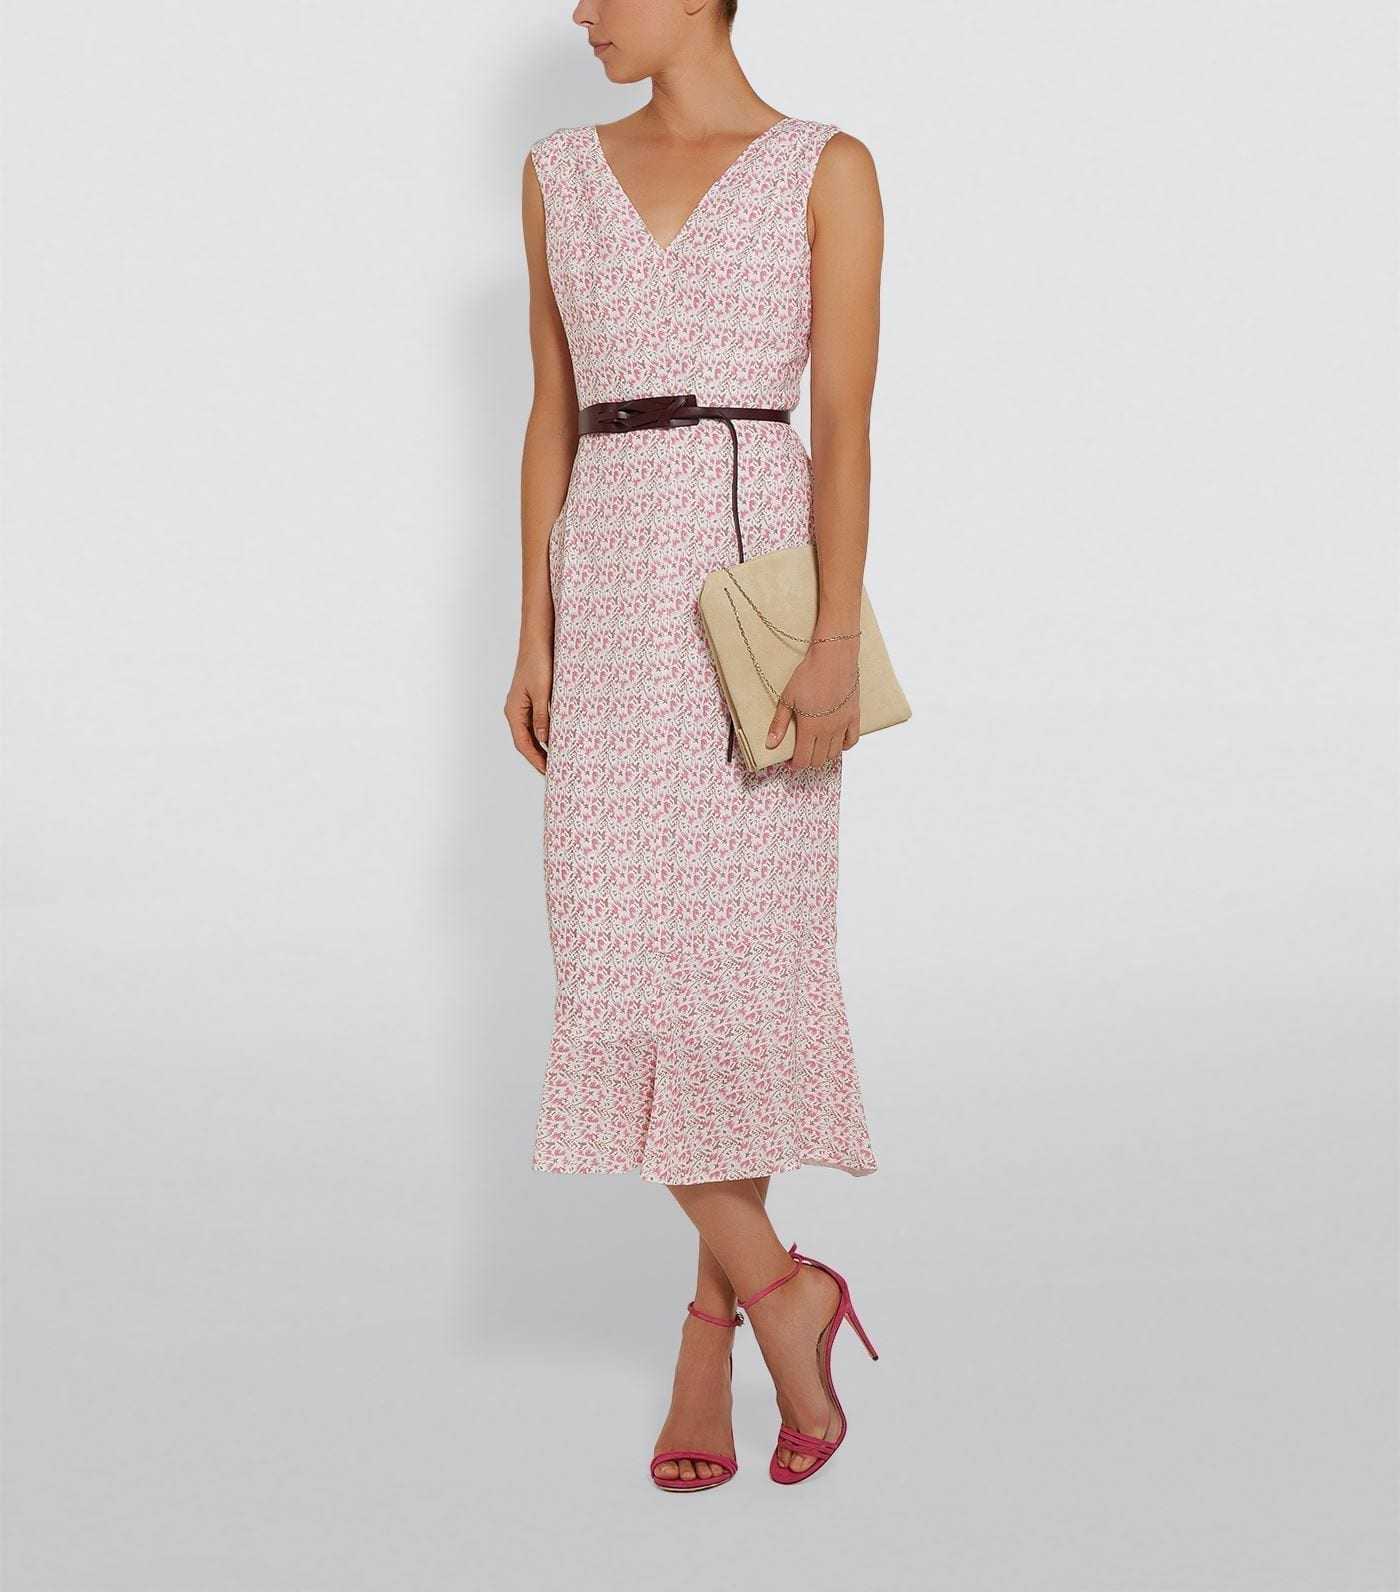 VICTORIA BECKHAM Ruffle Hem Belted Midi Dress